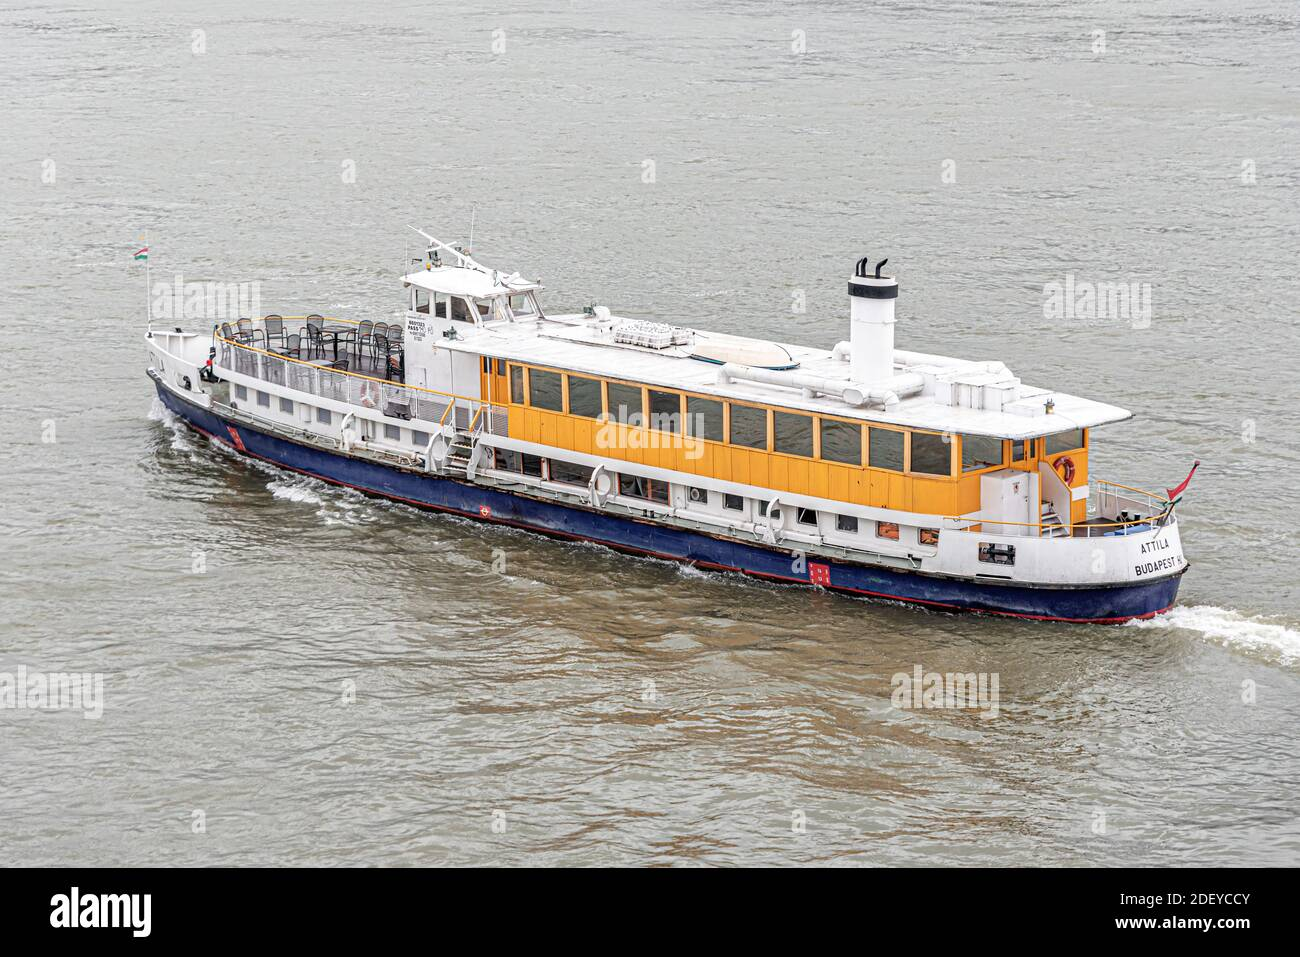 Small steamer on the Danube River in Budapest, the capital of Hungary. Stock Photo